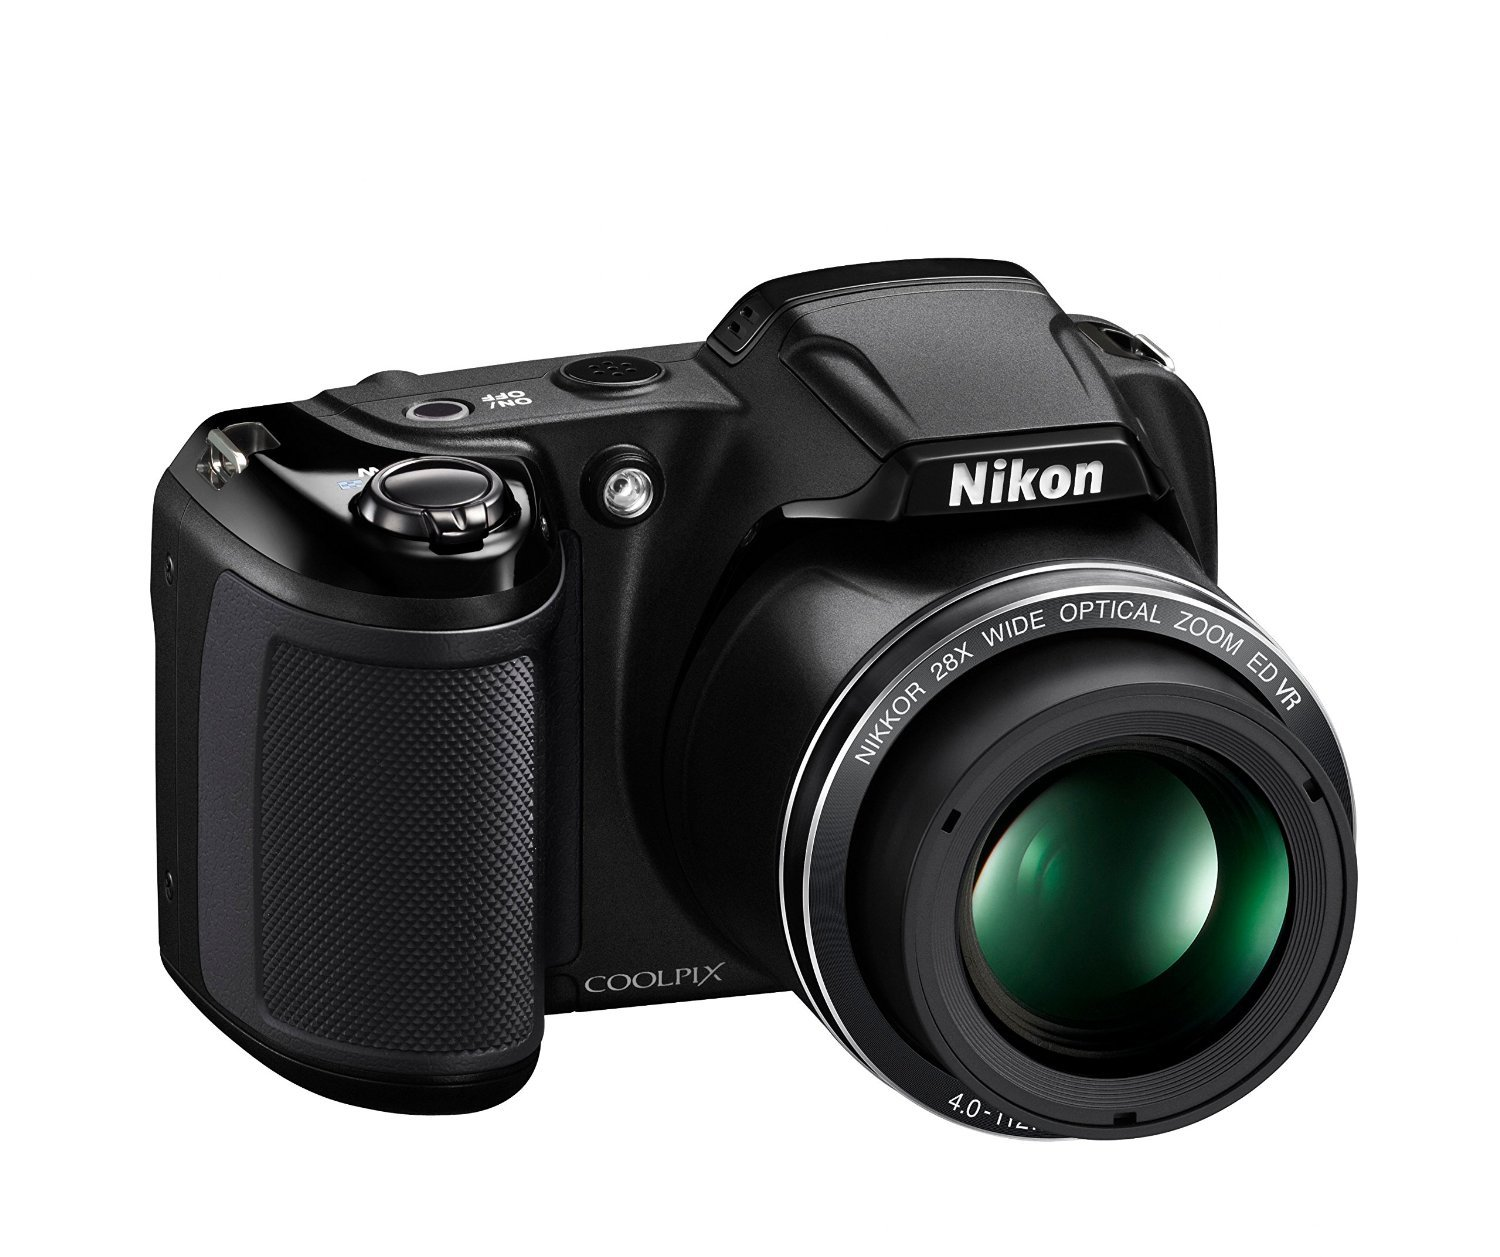 Nikon Coolpix L340 20.2 MP Digital Camera with 28x Optical Zoom and 3.0-Inch LCD (Black) (Certified Refurbished) by Nikon